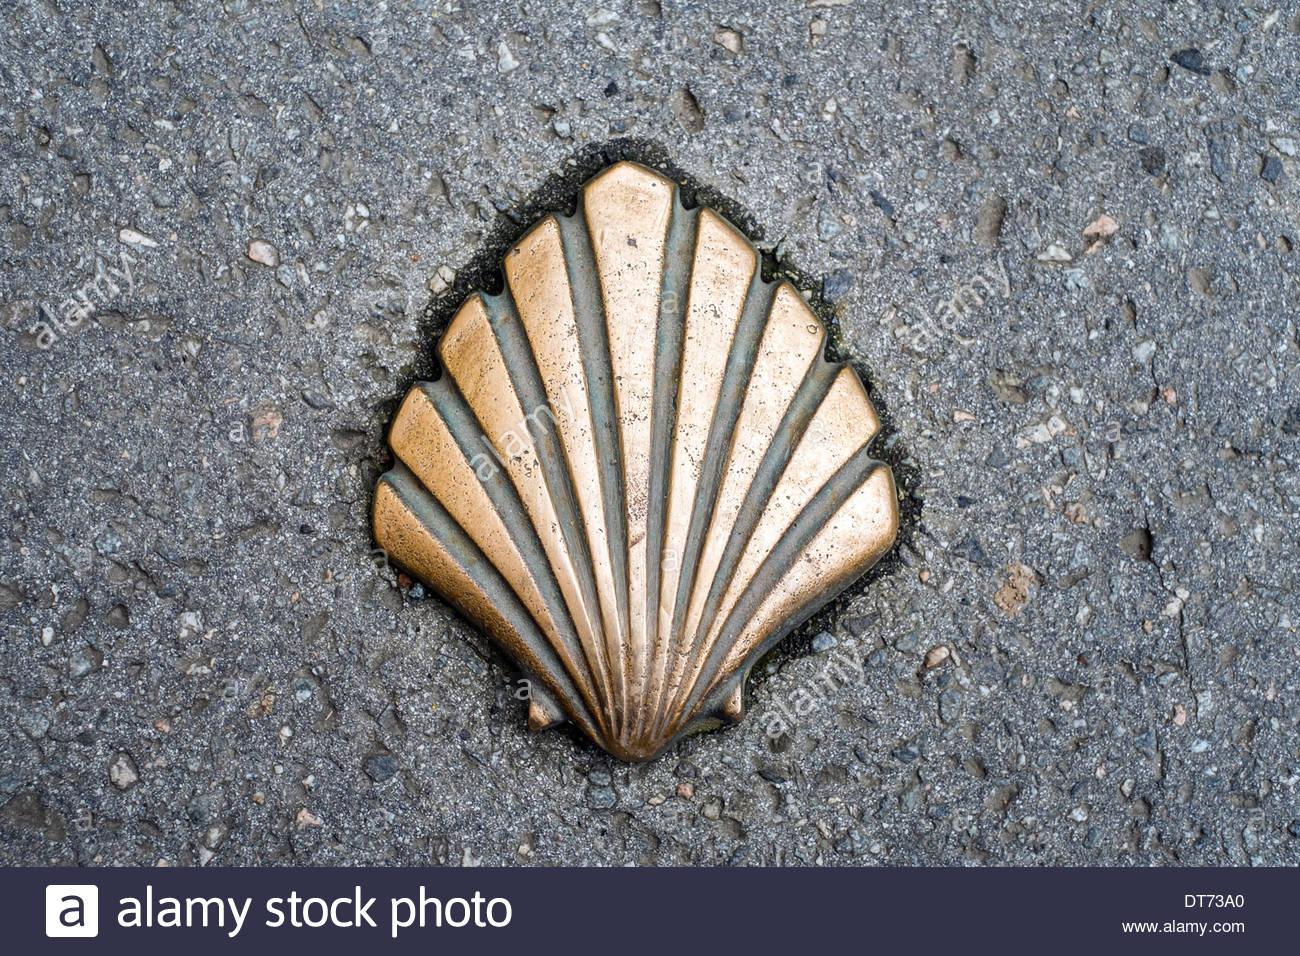 A Scallop Shell Symbol Depicting The Way Of Saint James Camino De